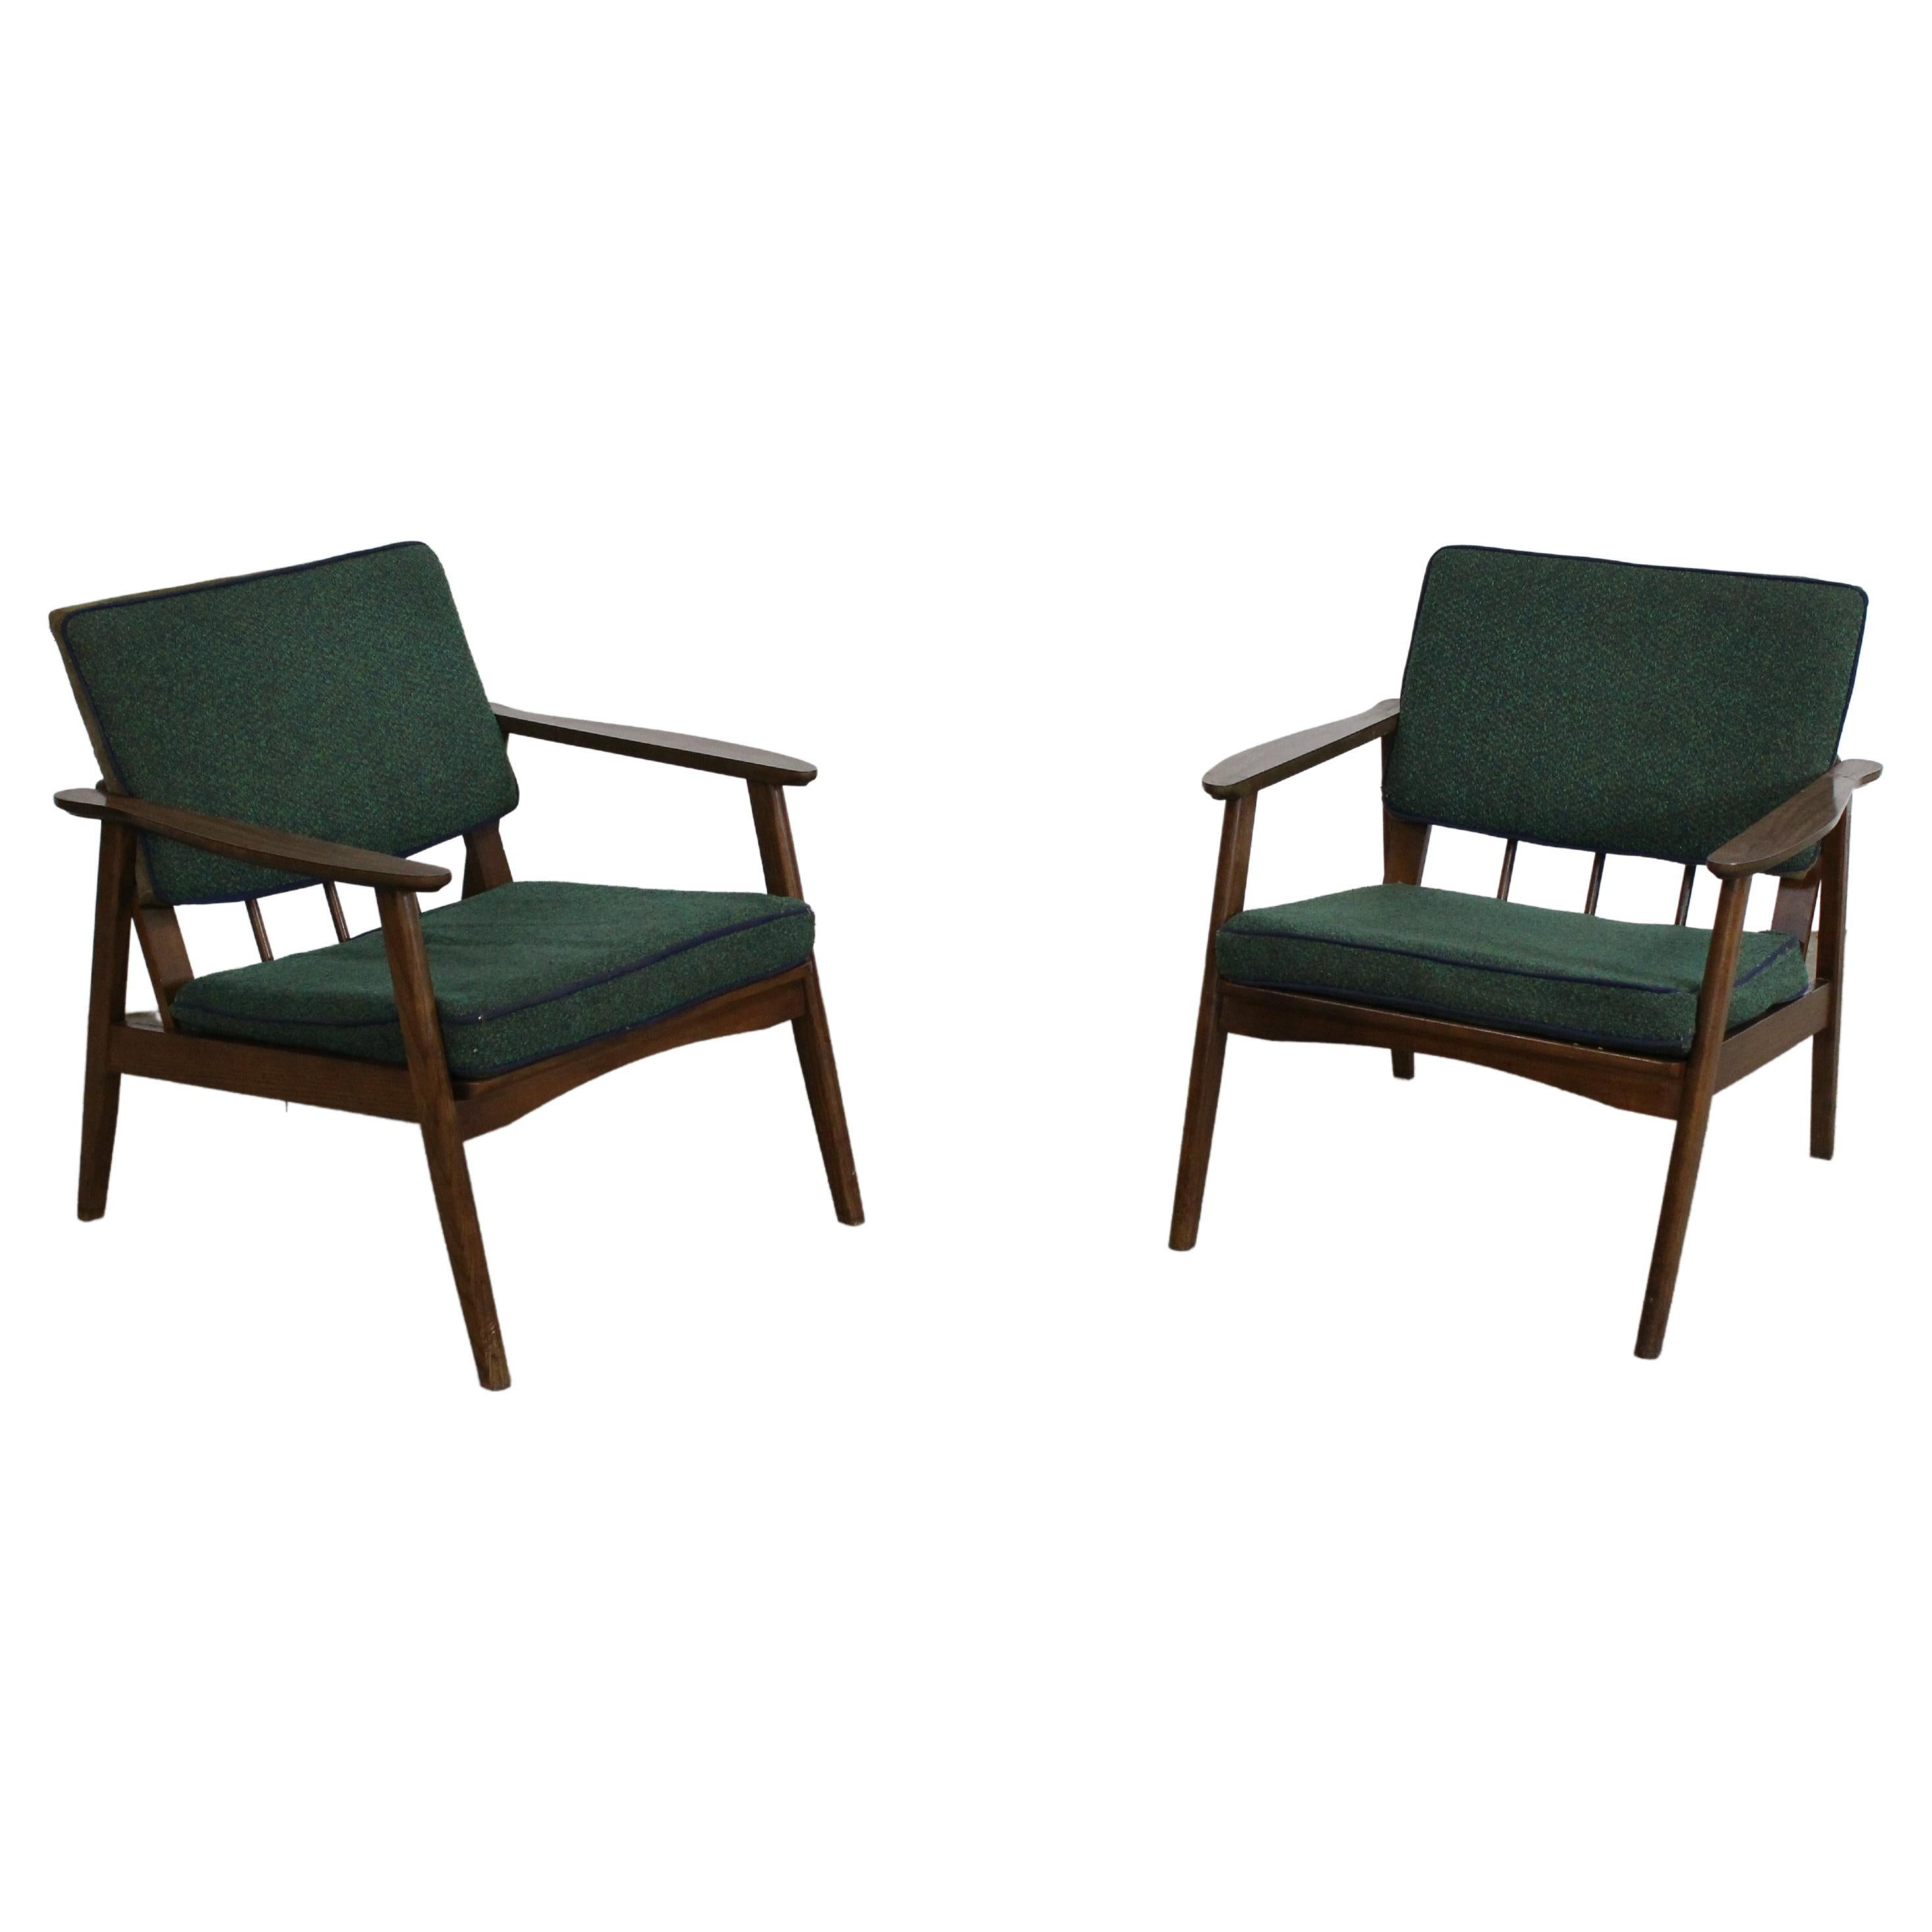 Pair of Mid-Century Lounge Chairs Walnut Open Arm Lounge Chairs